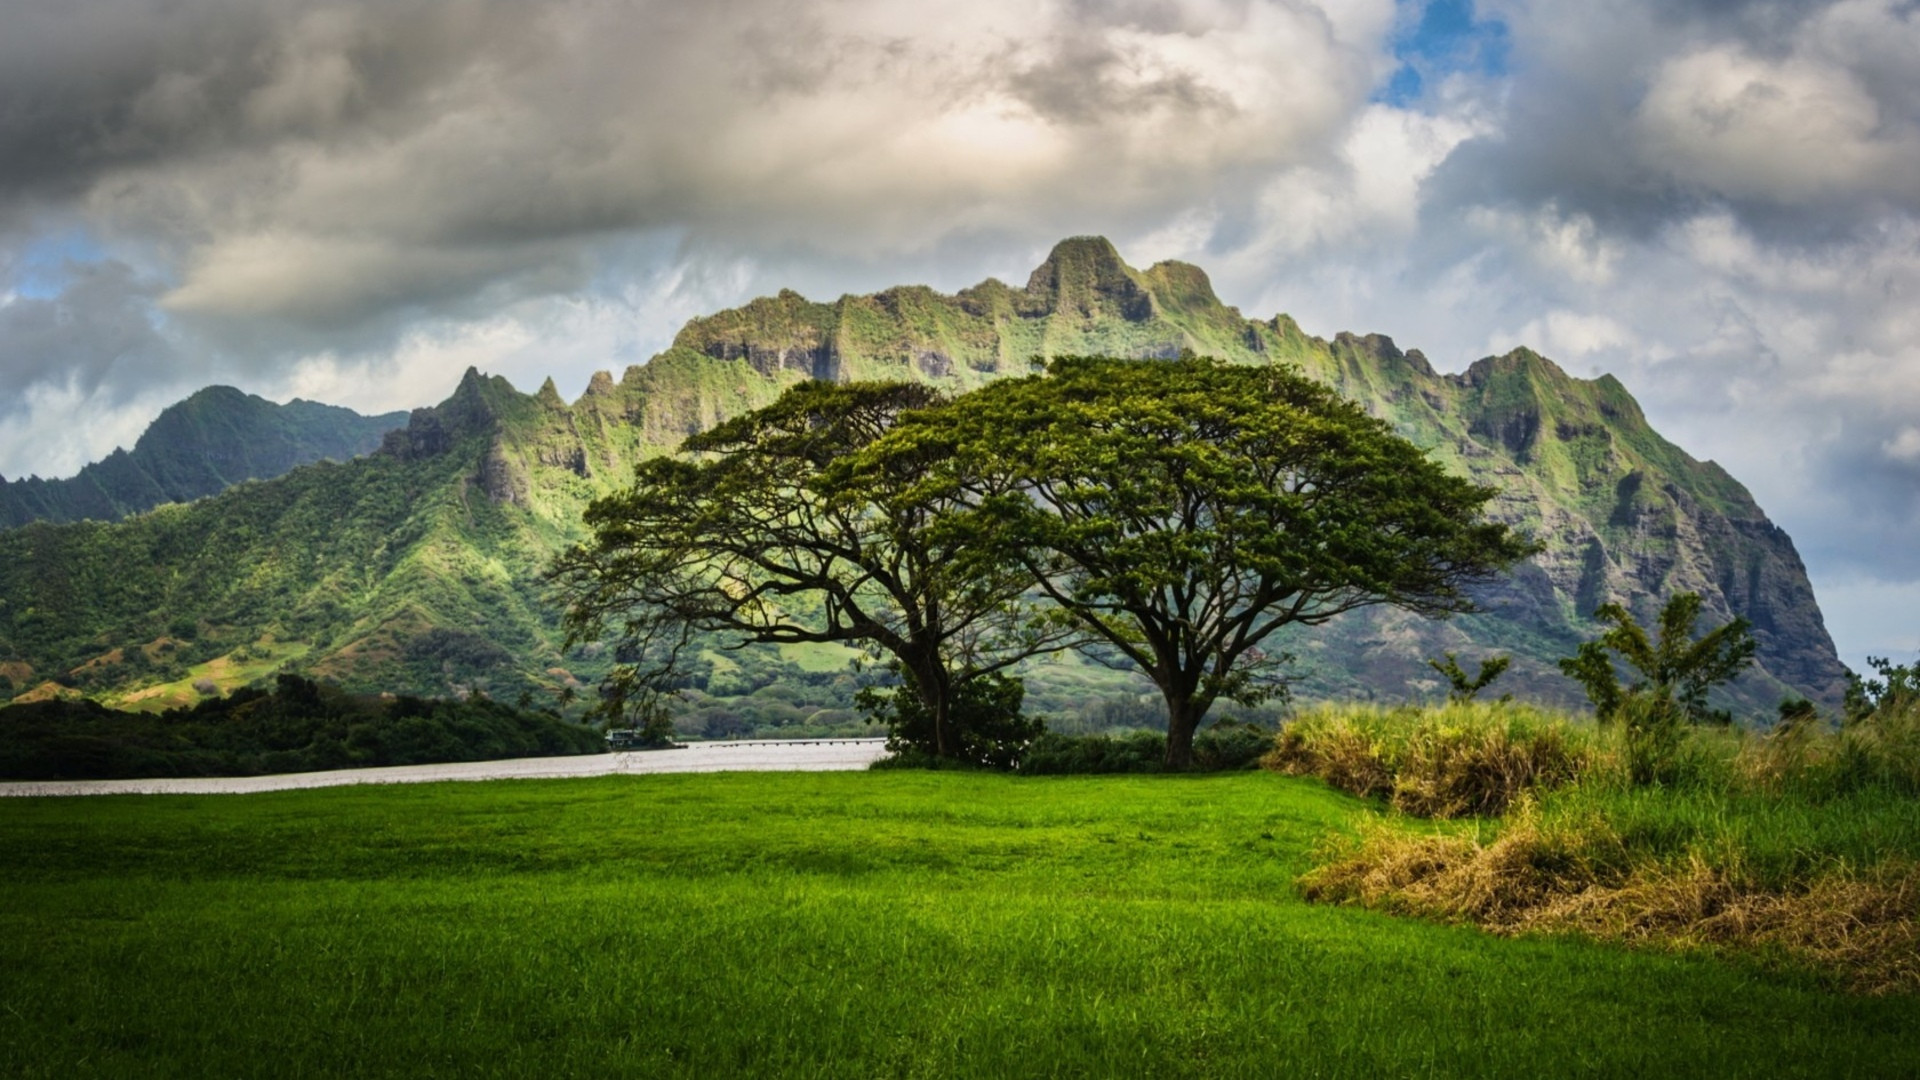 Mountains trees oahu hawaii landscape clouds wallpaper 1920x1080 1920x1080